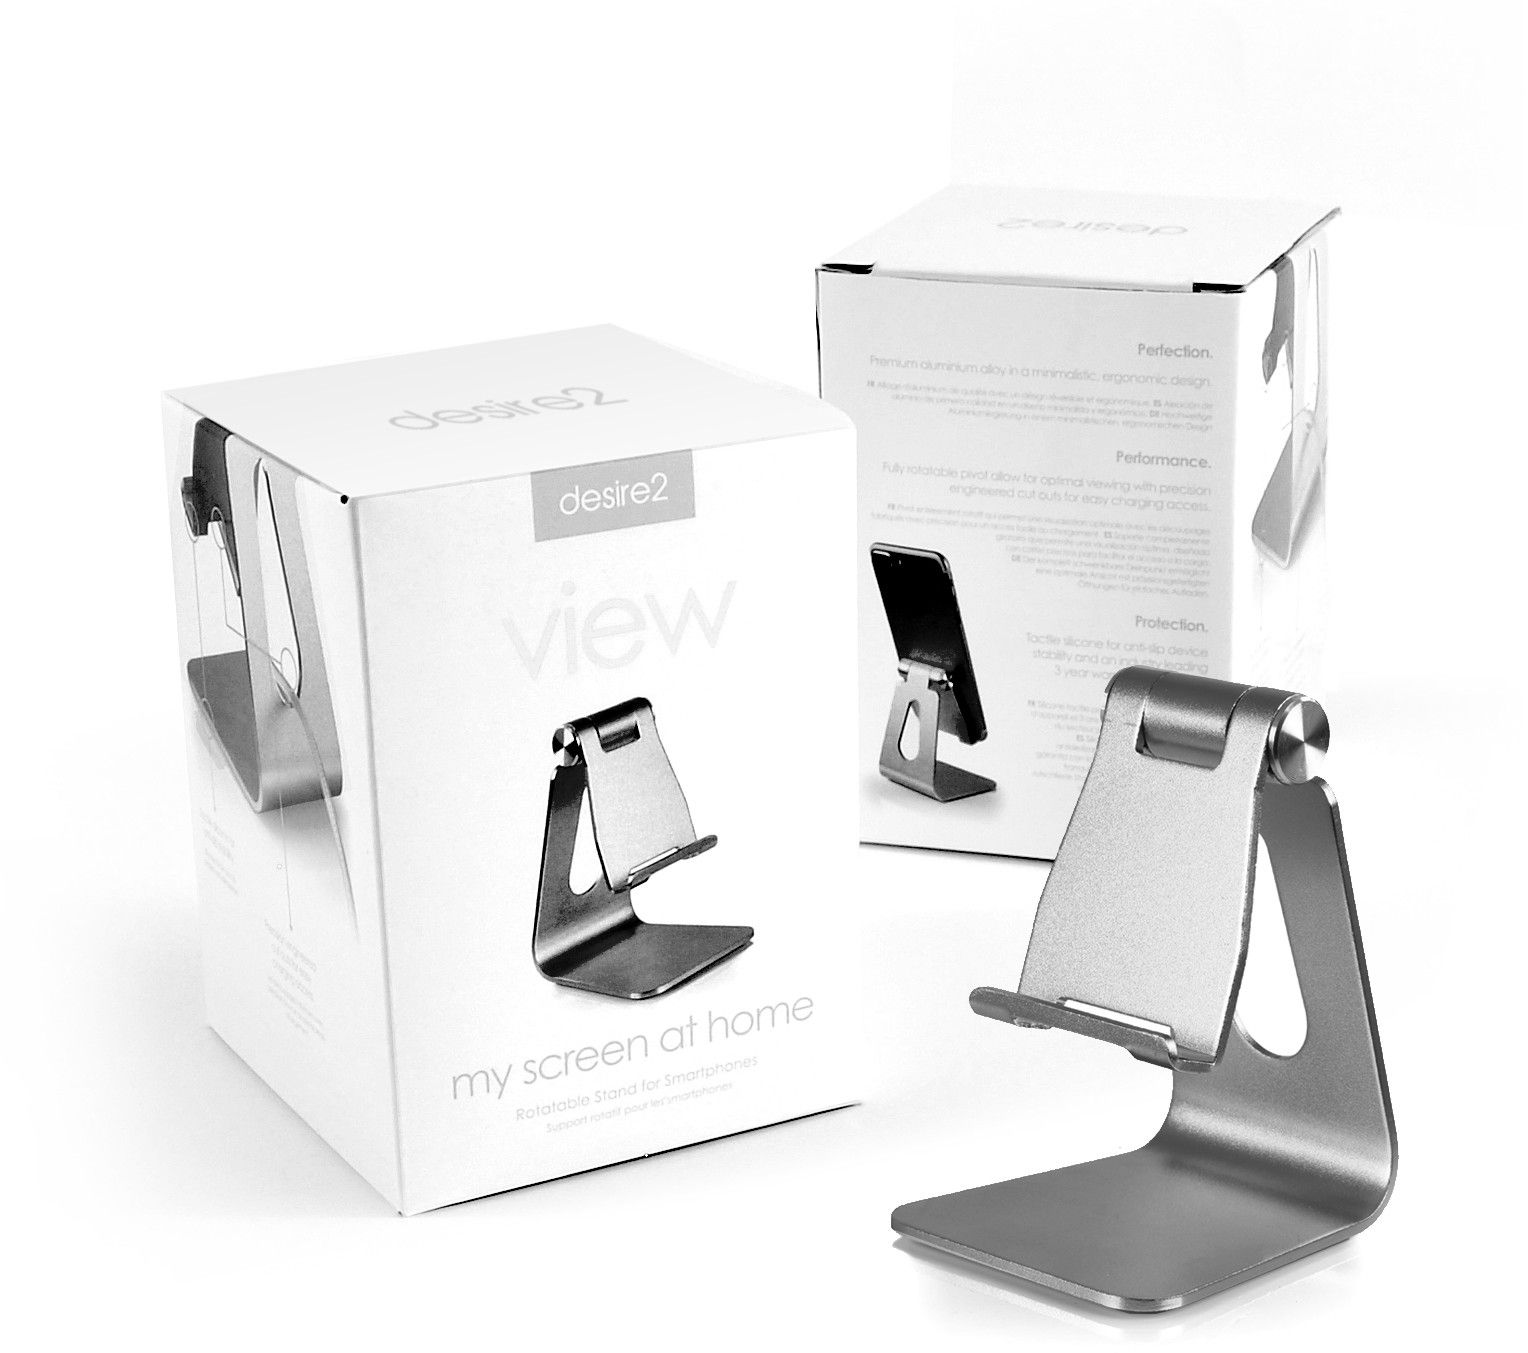 Desire2 Rotatable Stand (iPhone)